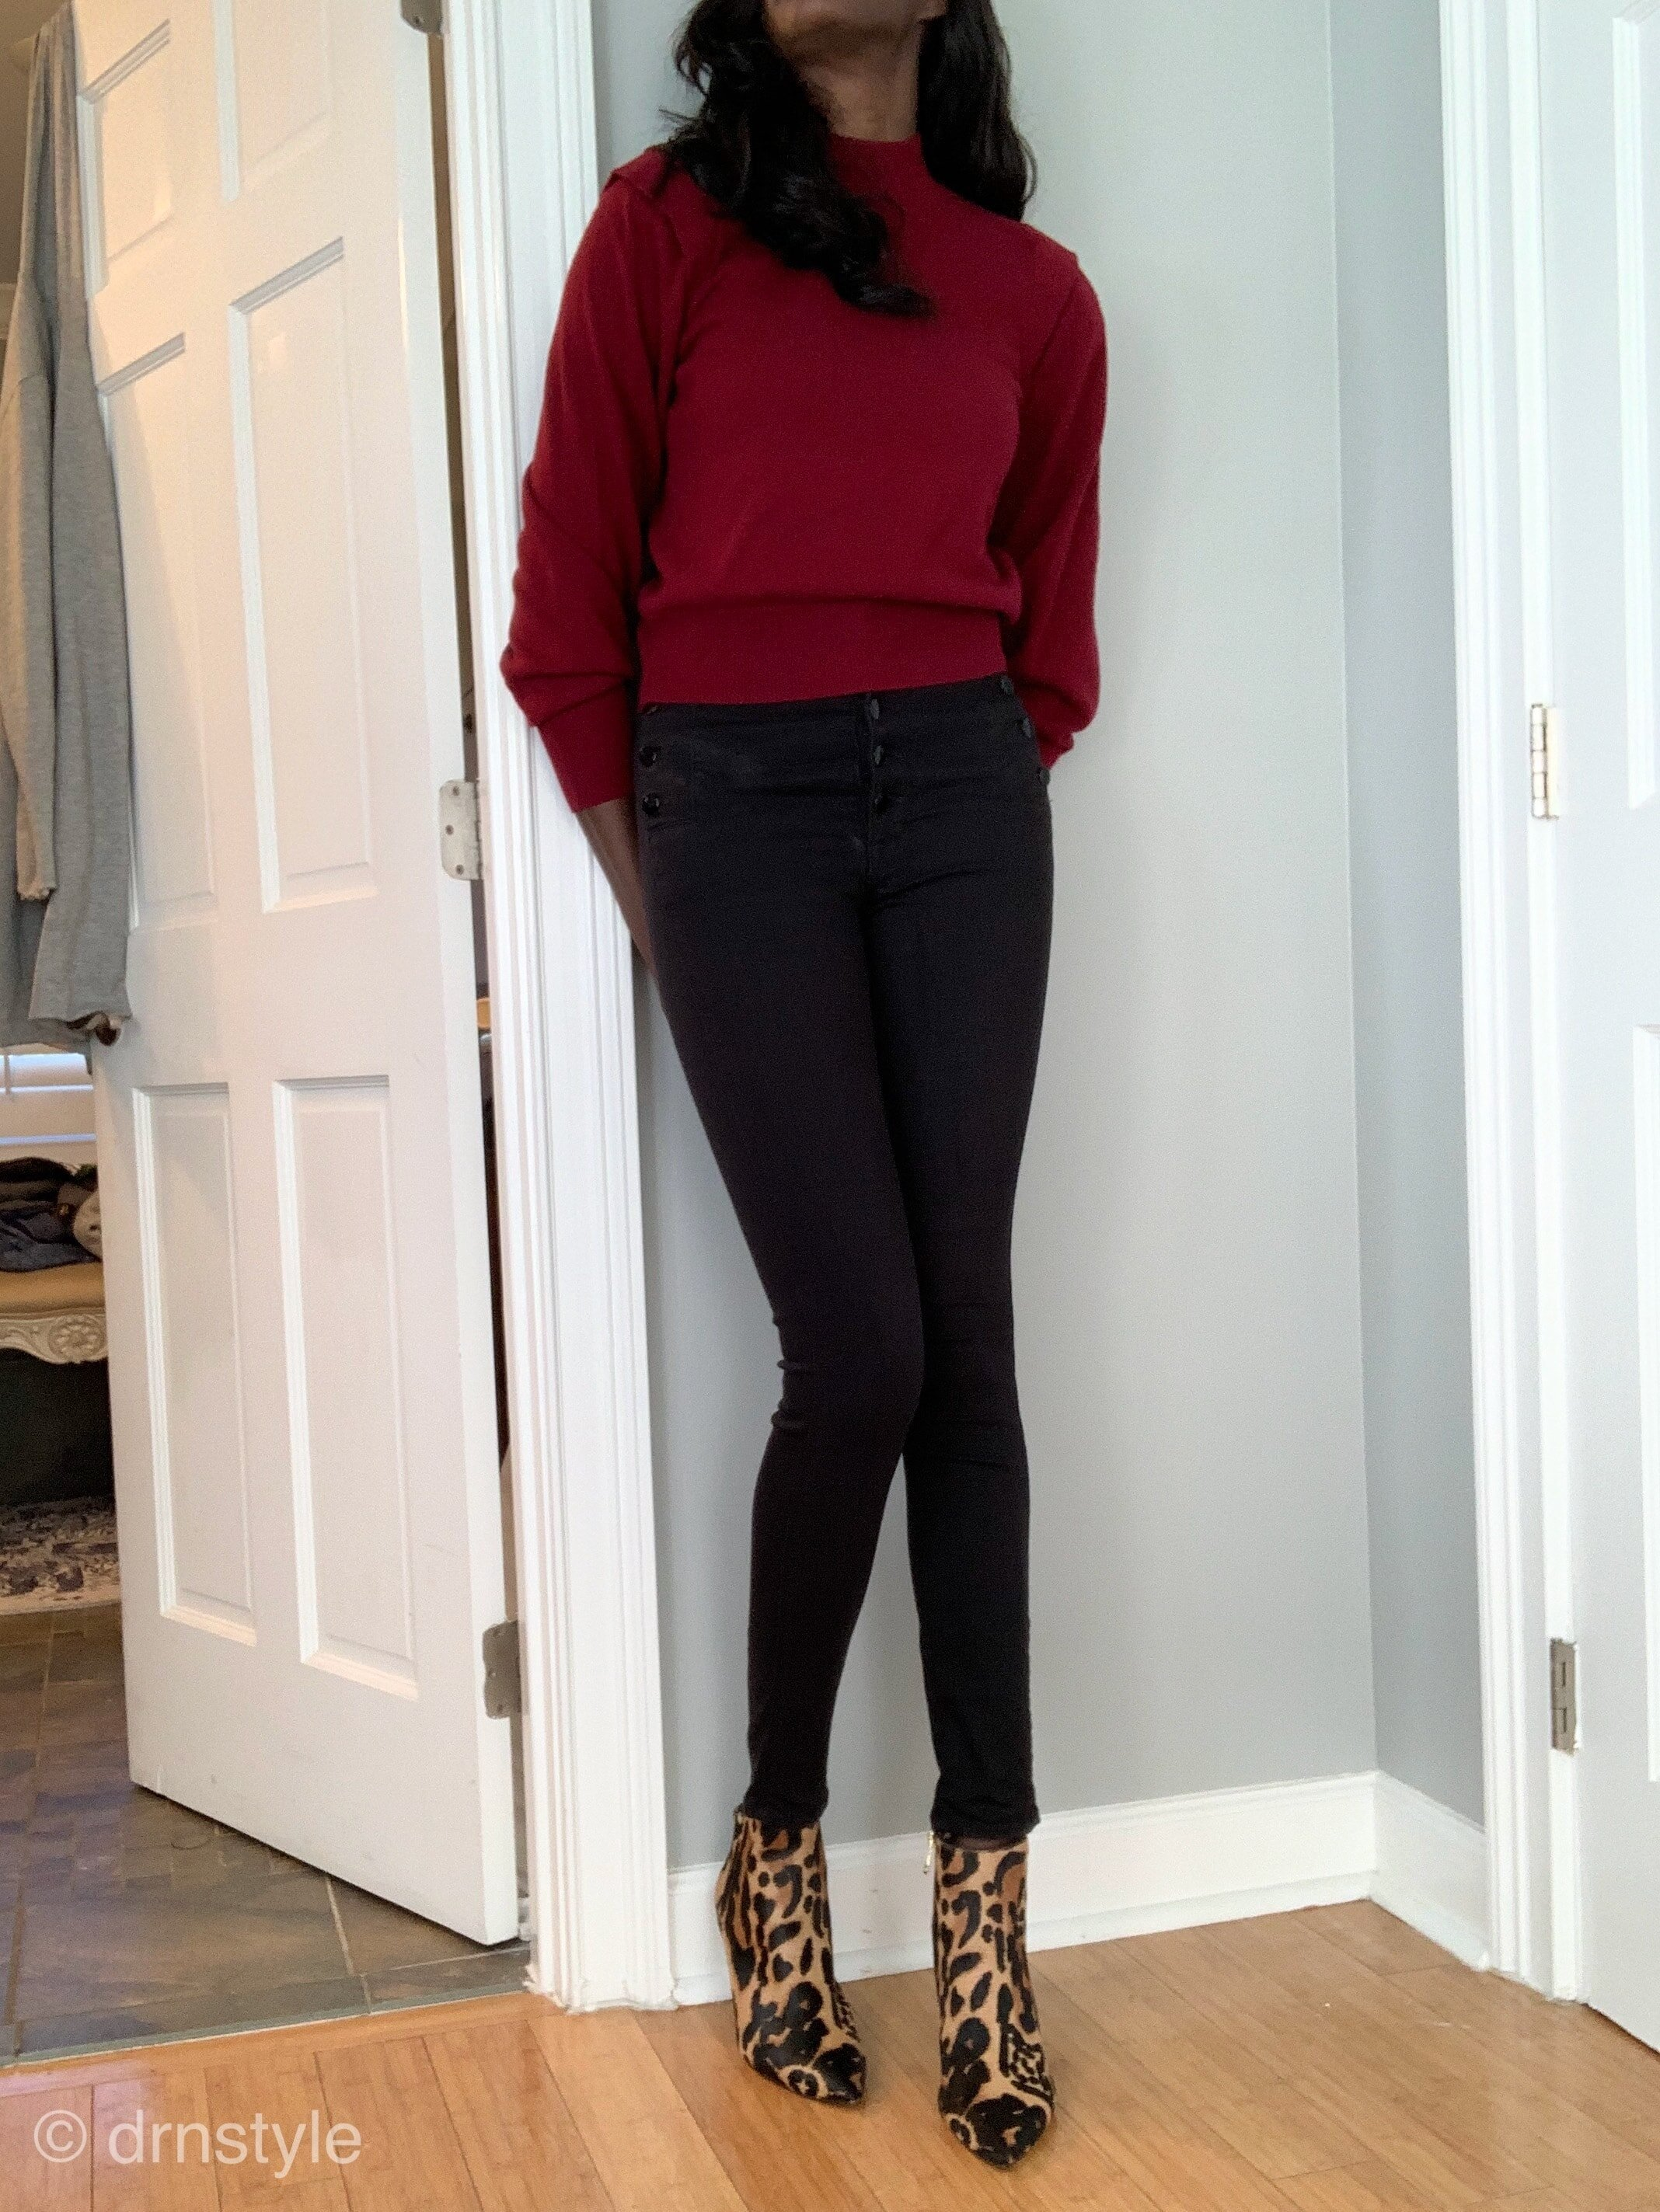 A burgandy sweater with black jeans and leopard print booties.